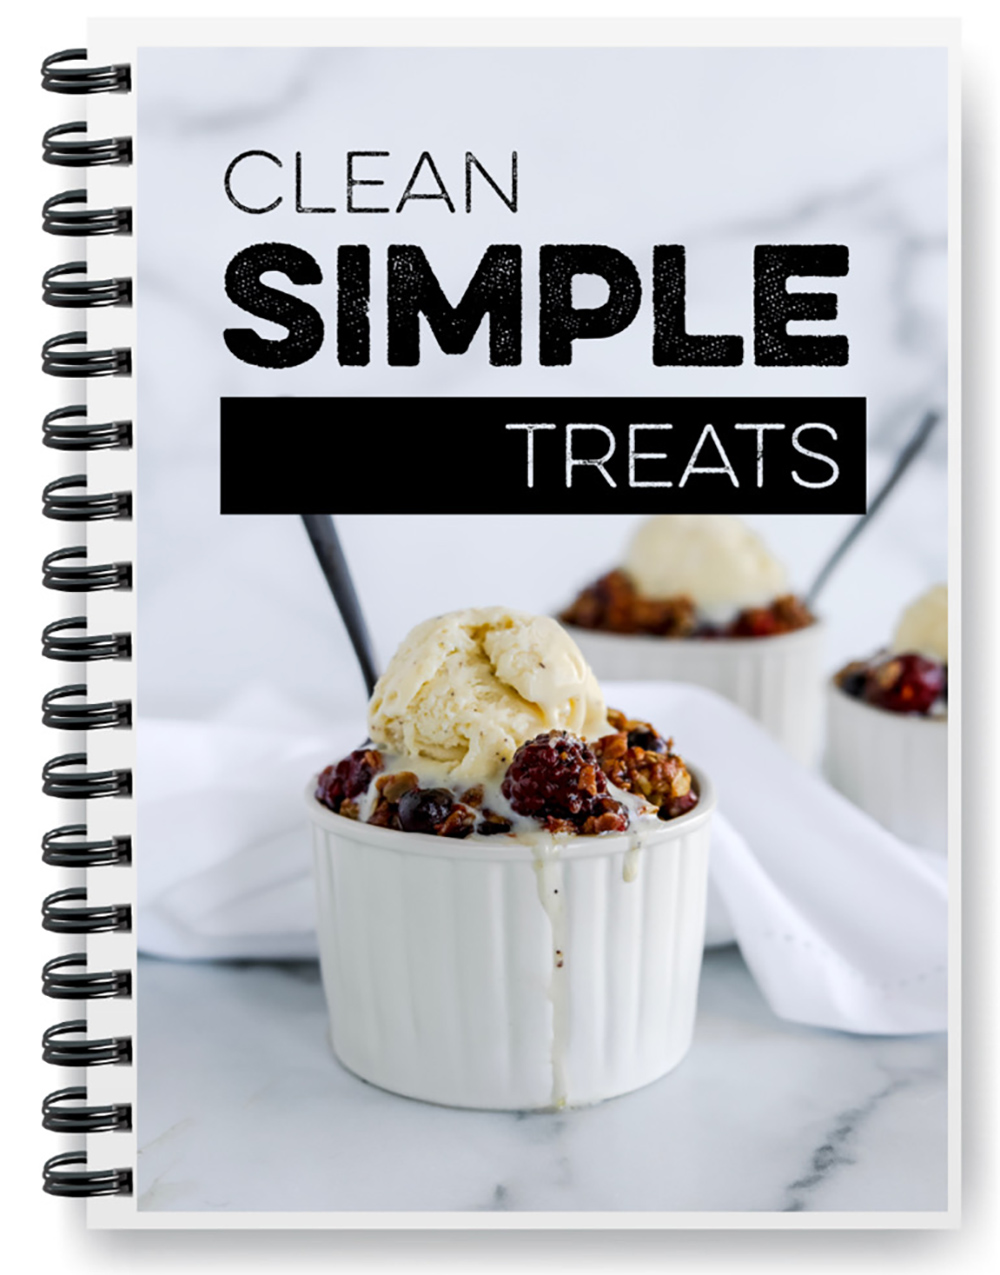 kailee wright Clean Simple Eats Treat recipe book